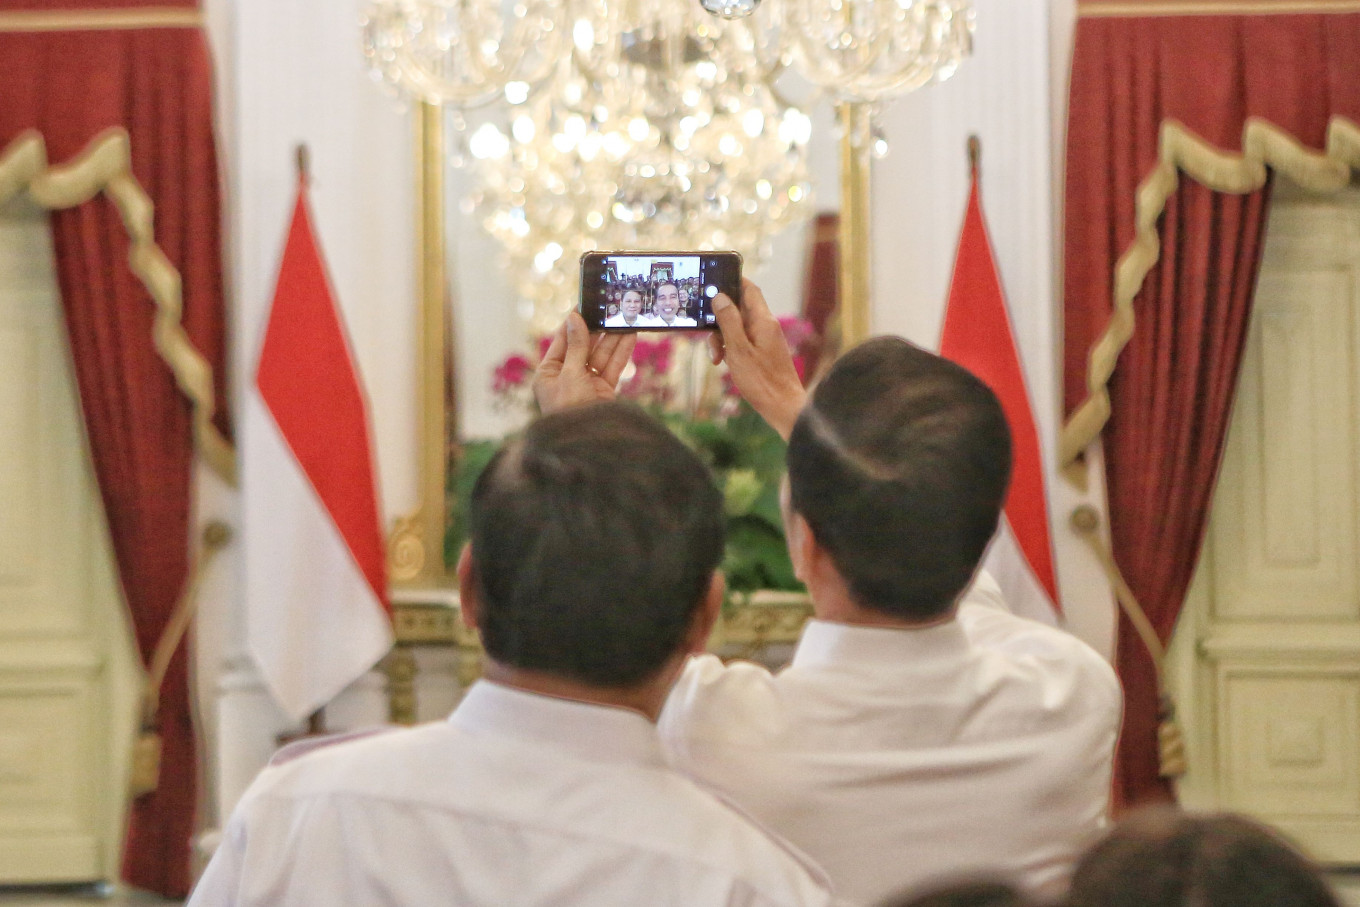 Less polarized Indonesia offers some respite for democracy